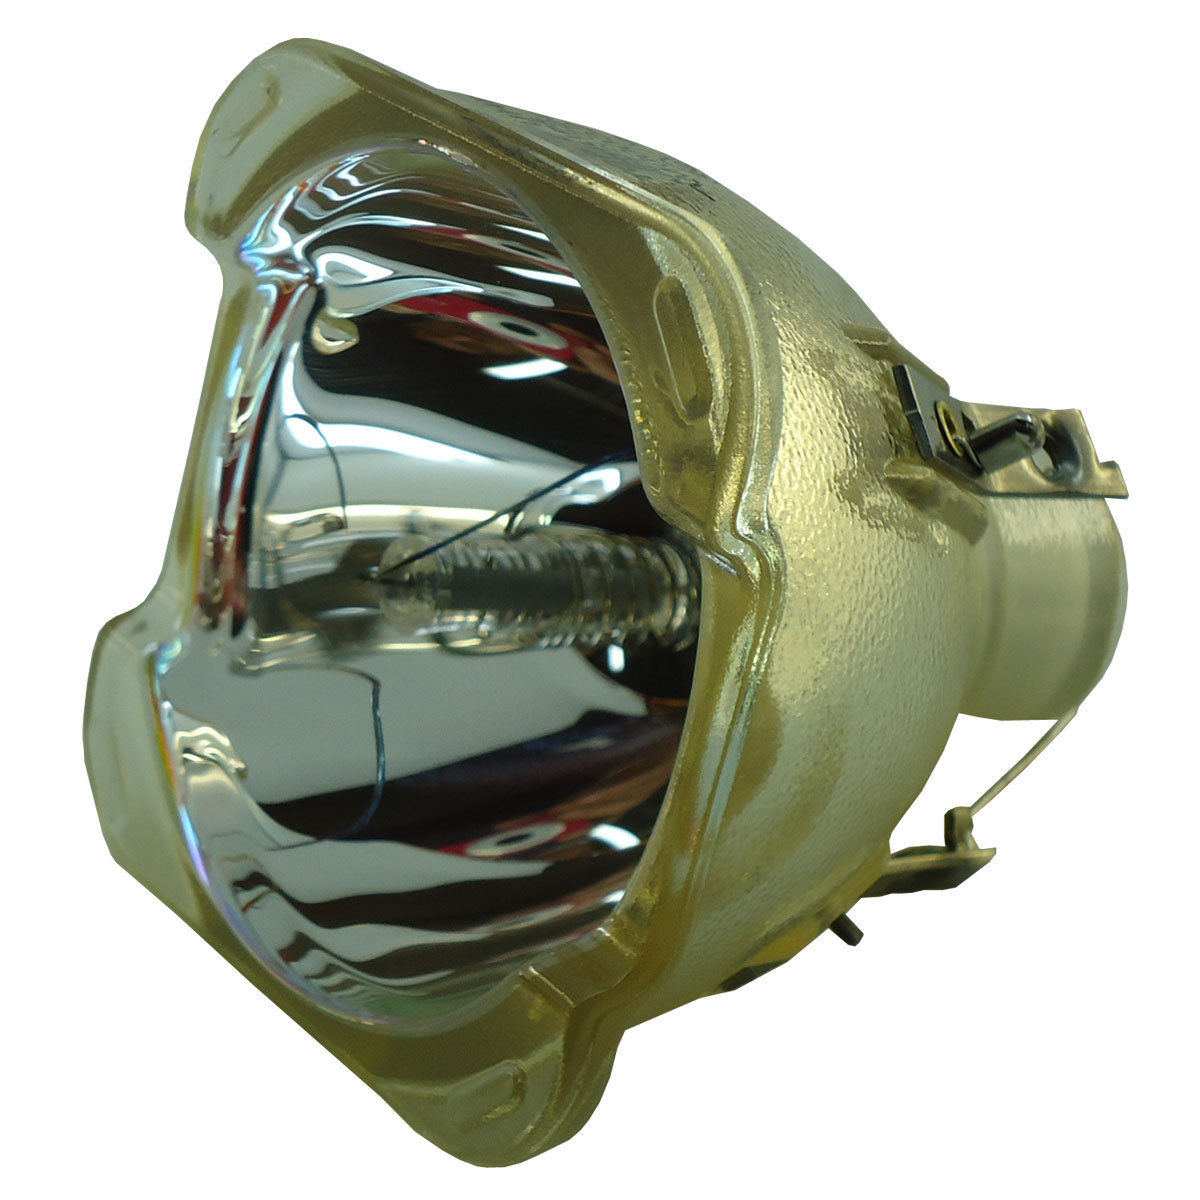 Compatible Bare Bulb 5J.J2D05.001 for BENQ SP920P Projector Bulb Lamp without housing compatible bare projector lamp bulb 5j j2n05 011 for benq sp840